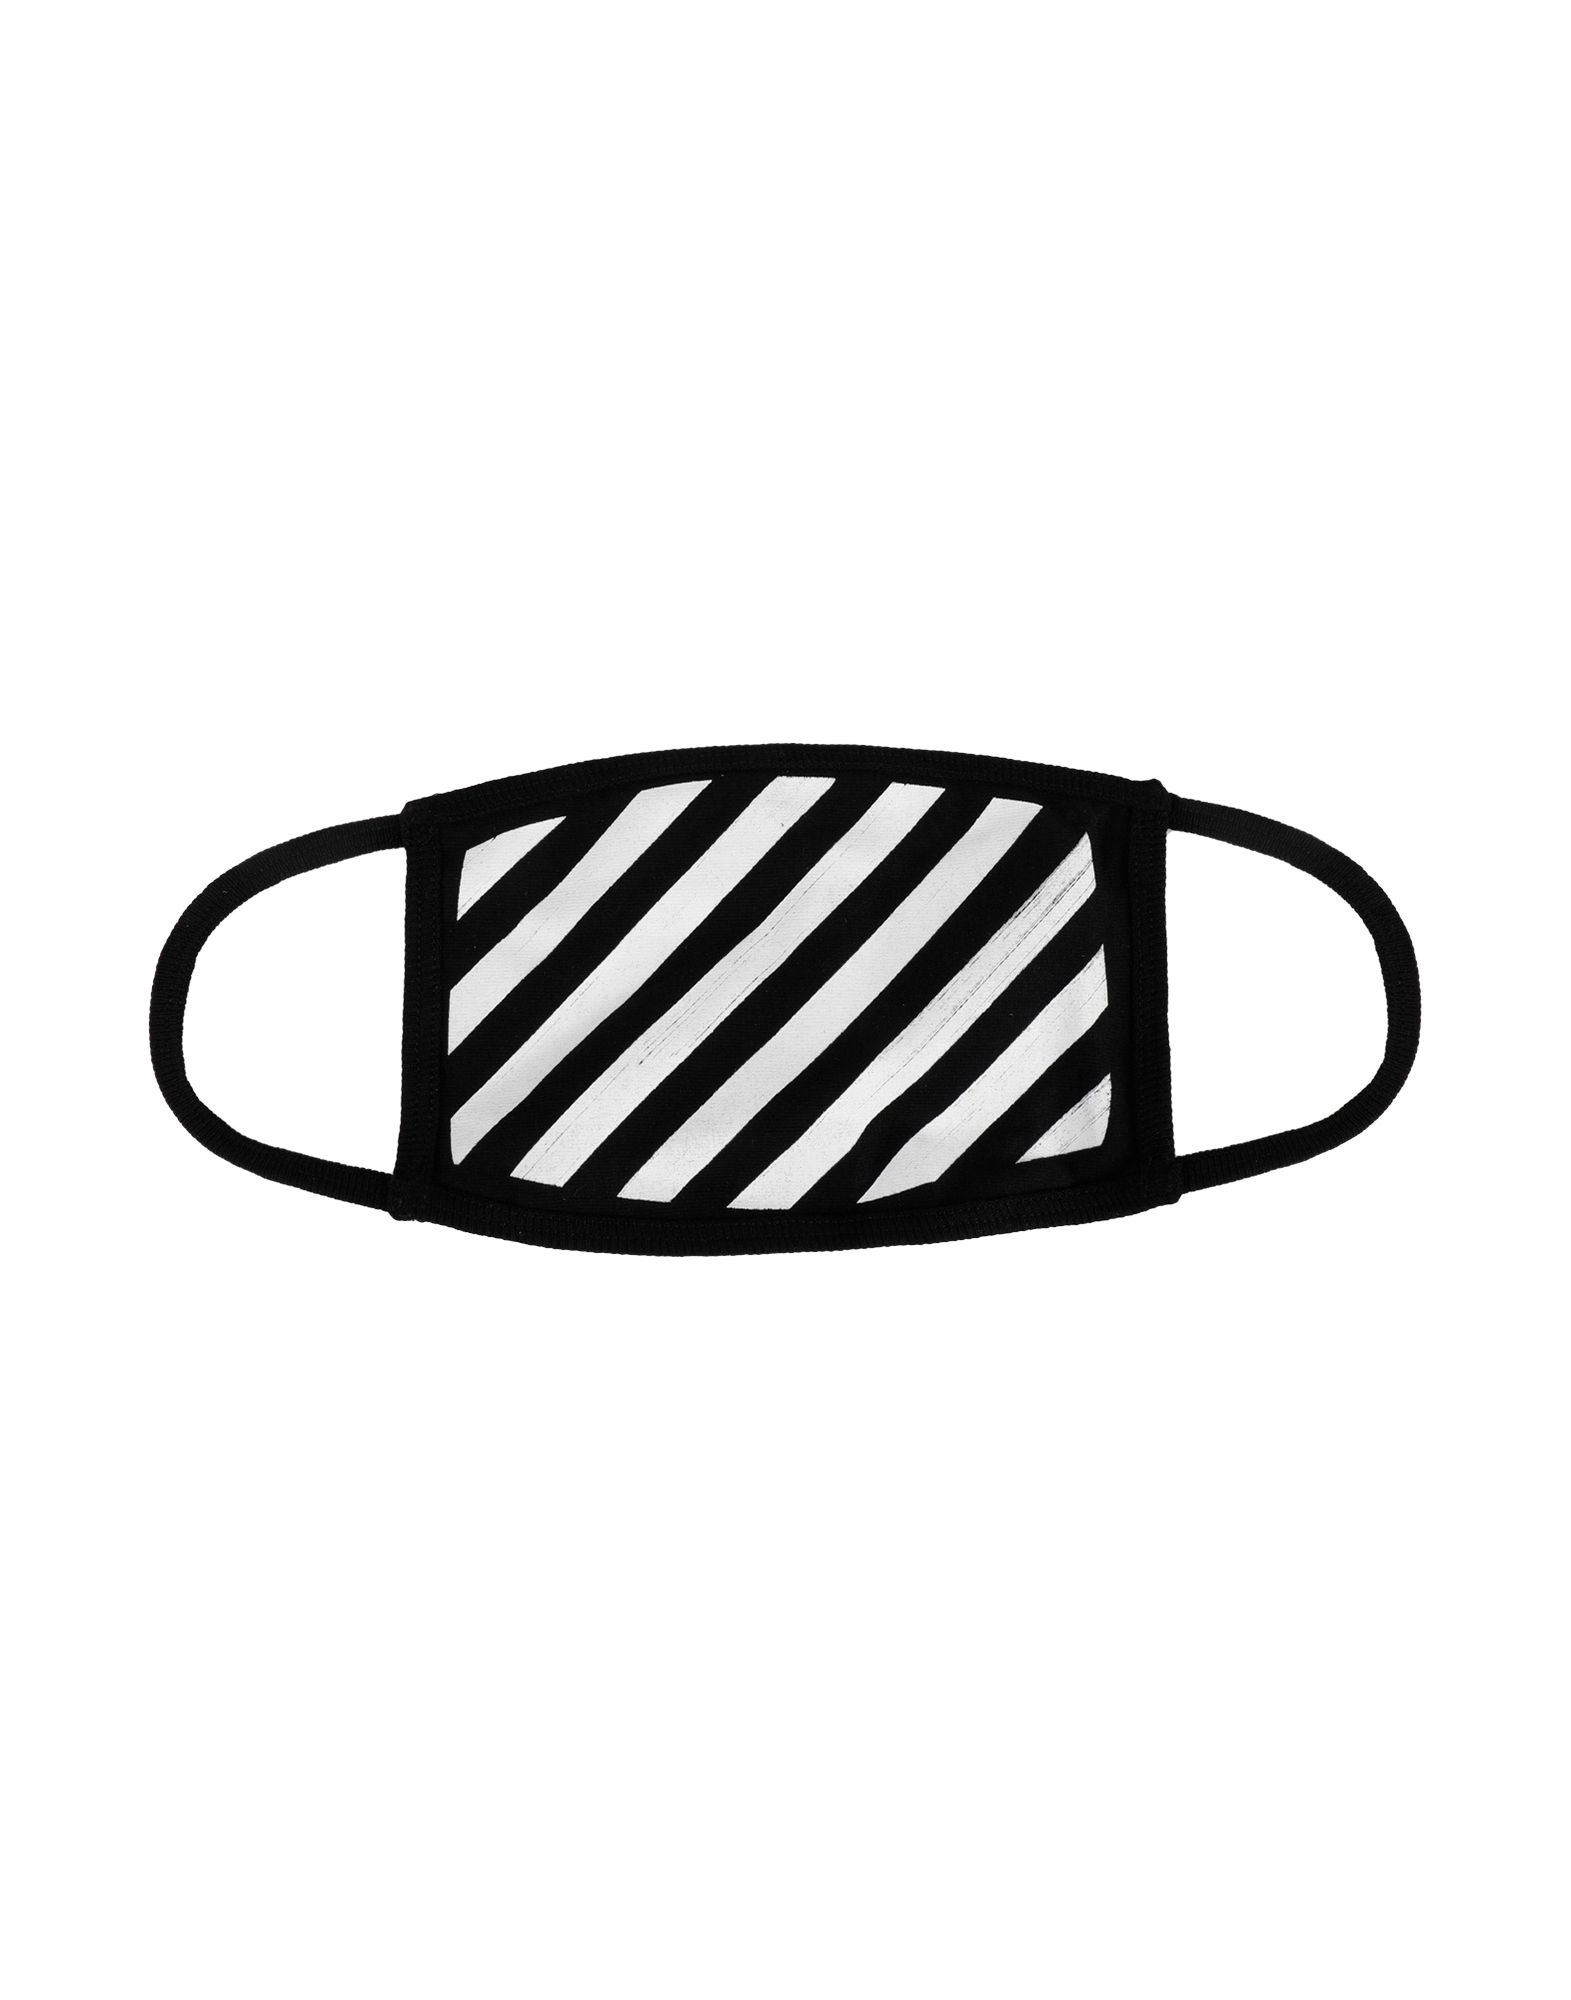 OFF-WHITE™ Eyemasks. jersey, print, stripes. 100% Cotton